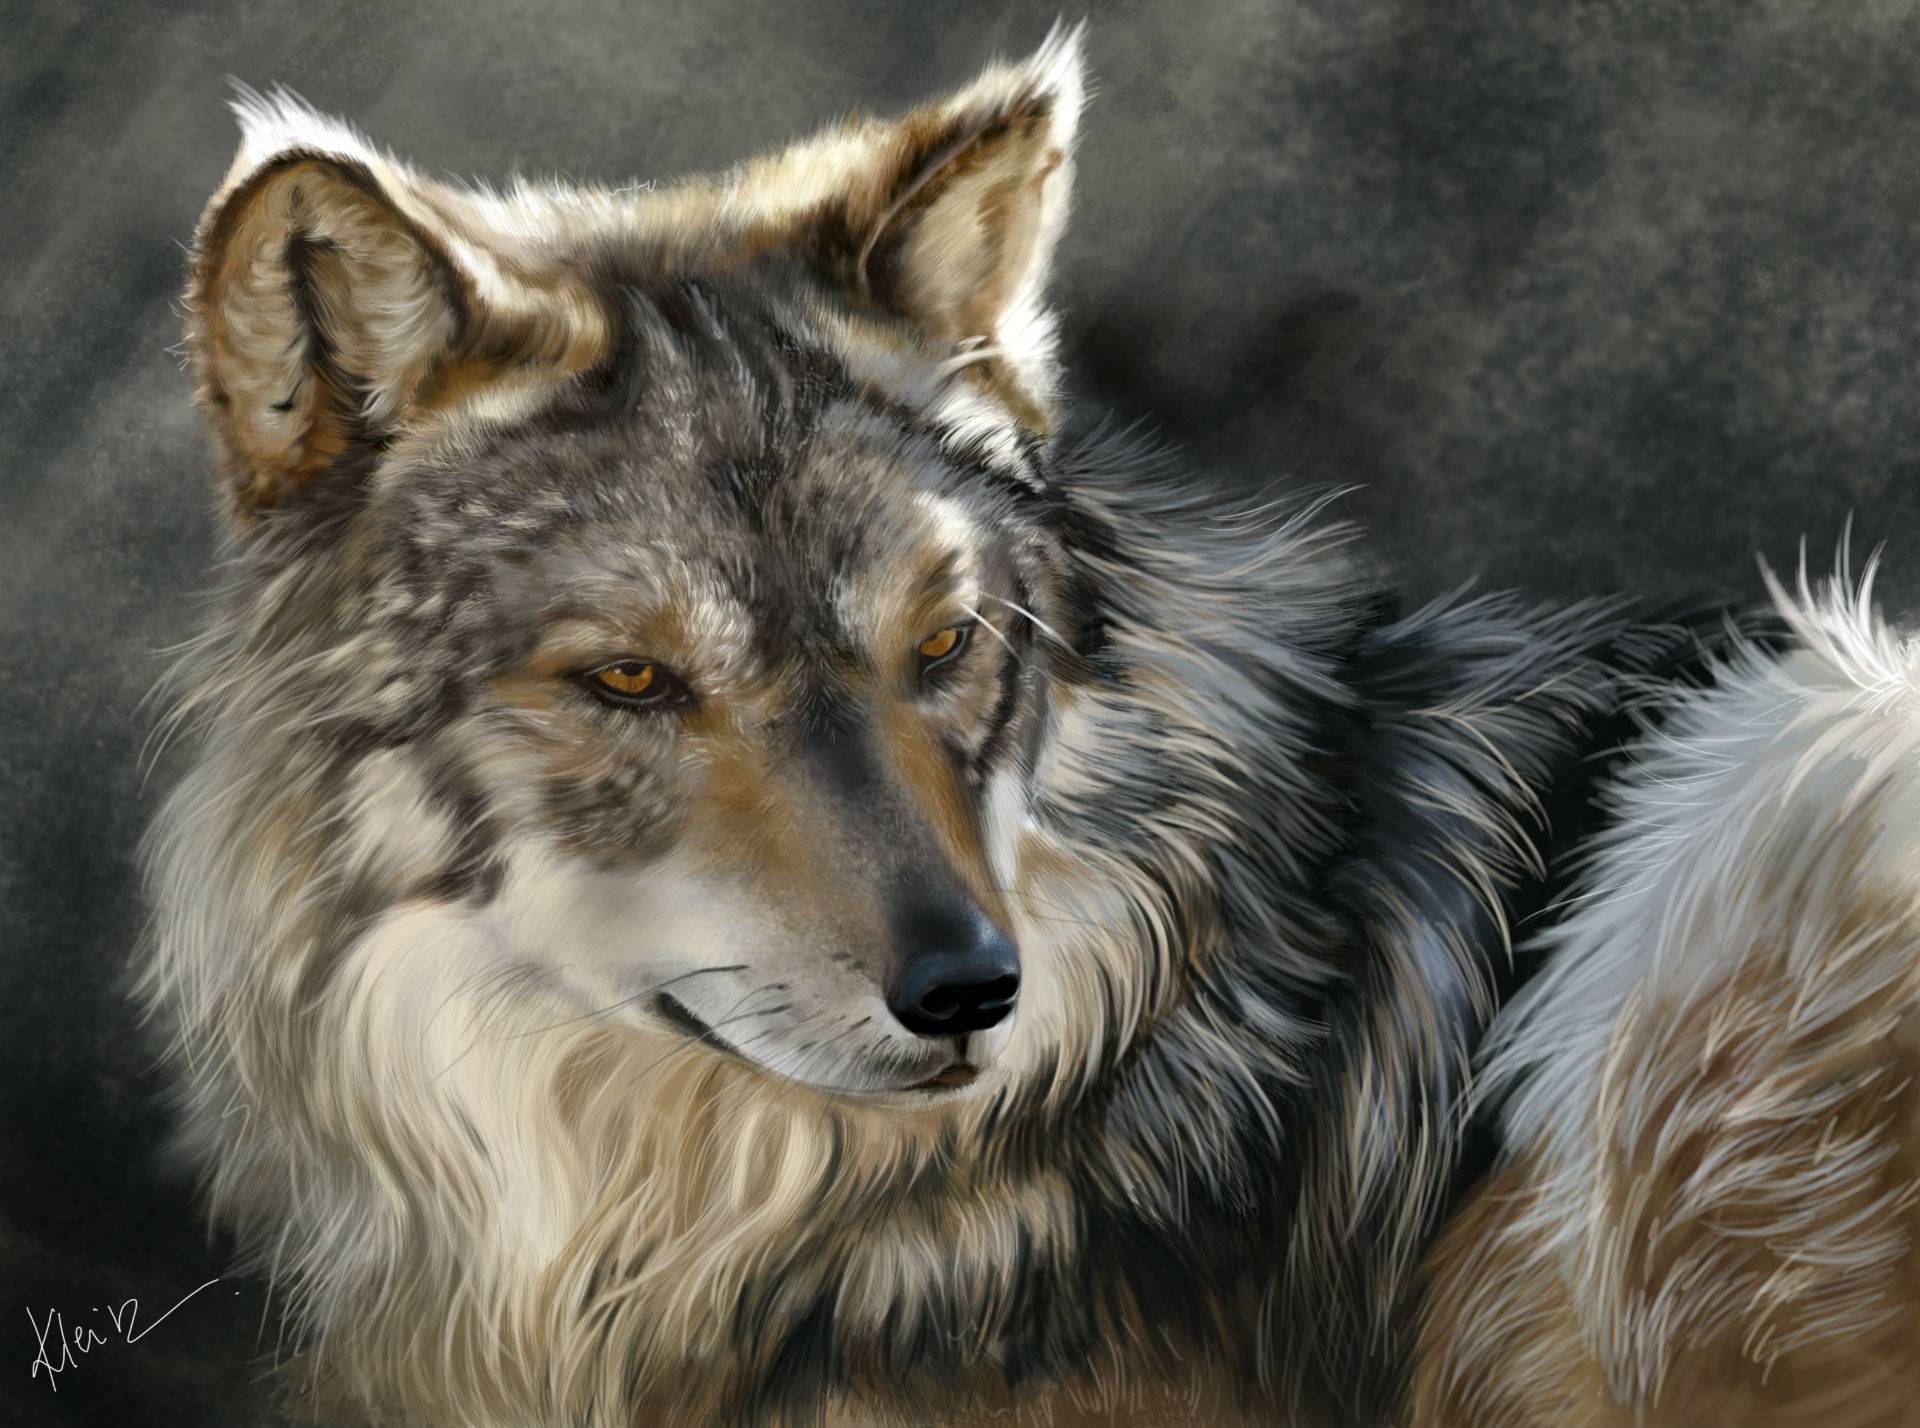 Wolves Painting Art Glance Animals wolf wallpaper 1920x1428 70887 1920x1428